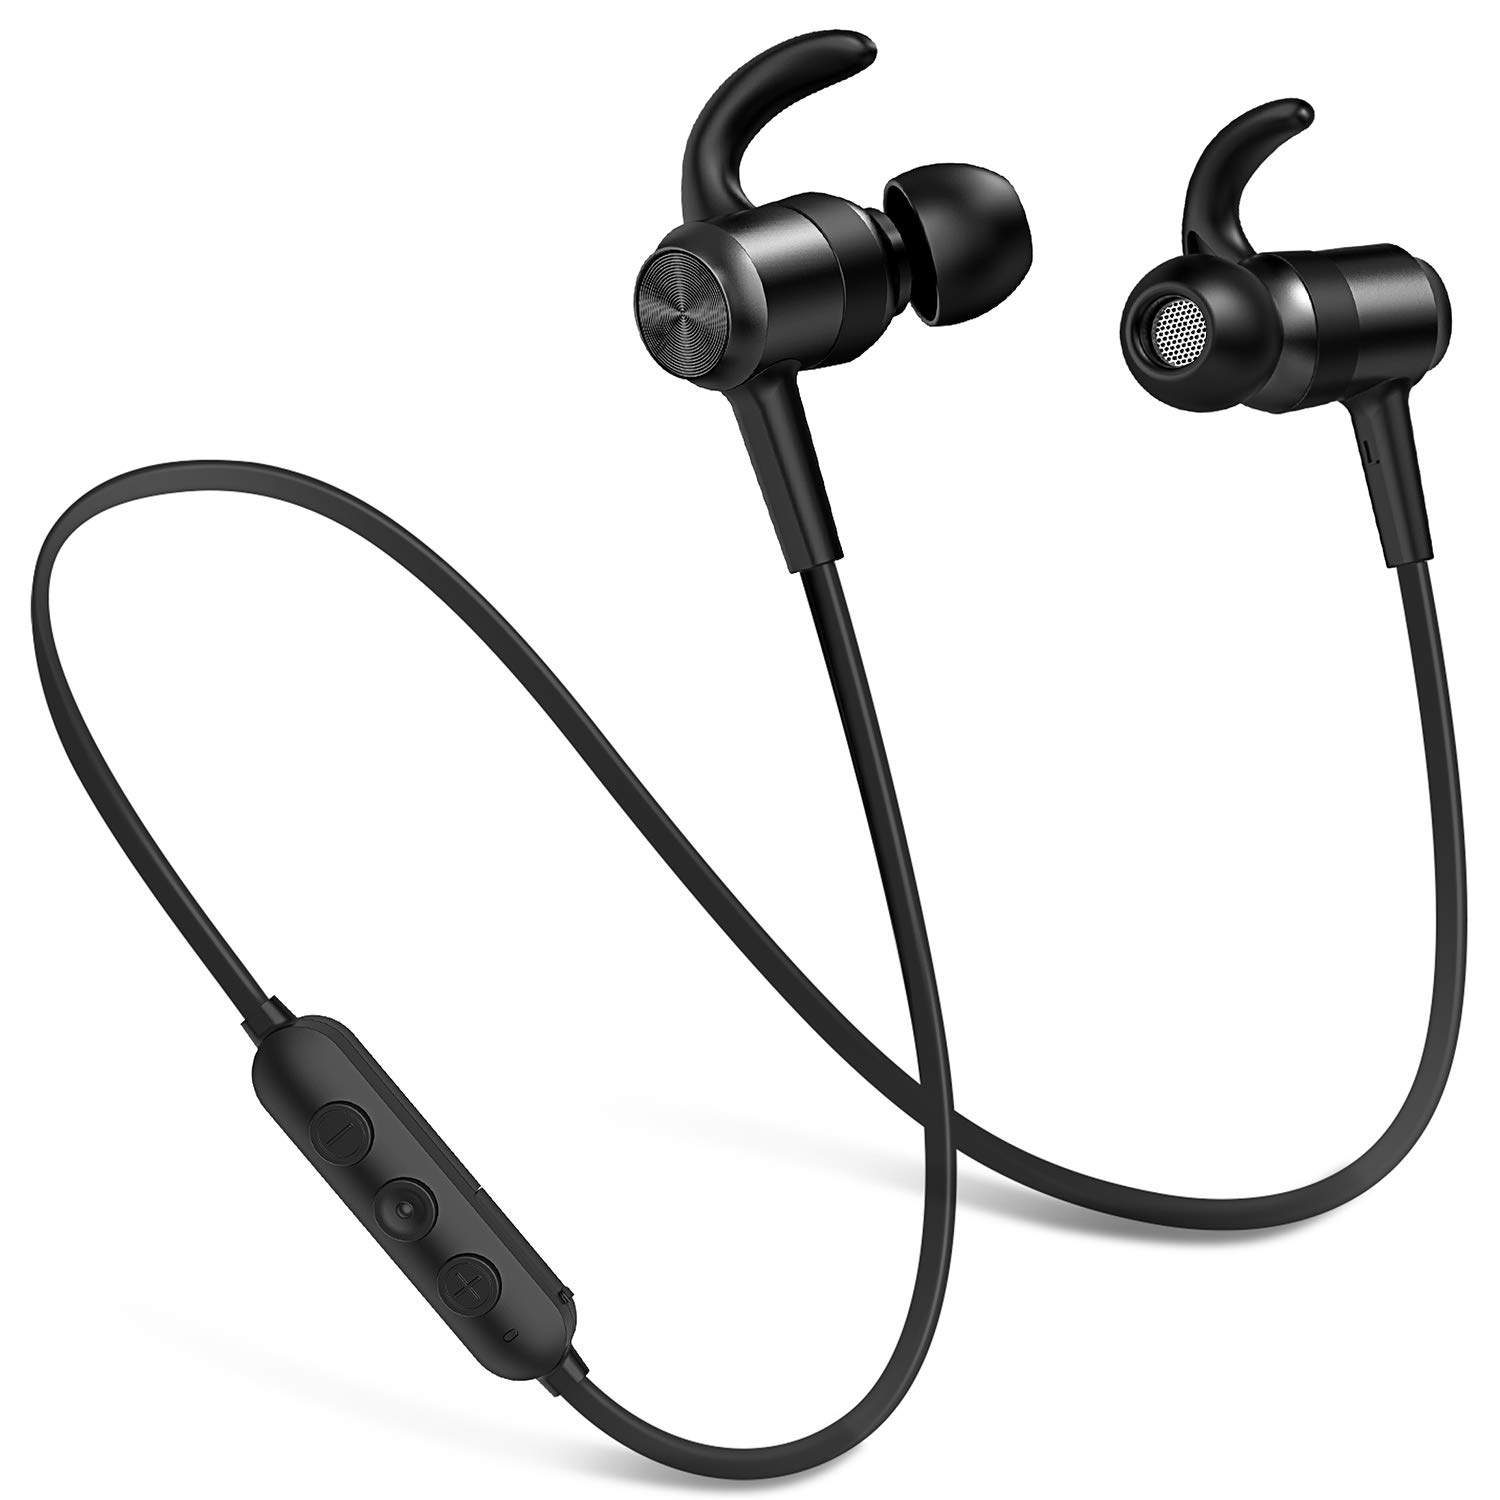 Bluetooth Headphones IPX7 Waterproof 10 Hours Playtime Wireless Earbuds Sports in-Ear Headsets Richer Stereo Magnetic Earphones with HD Mic/Carry Pouch, Secure Fit for Gym Workout Running Online-Black